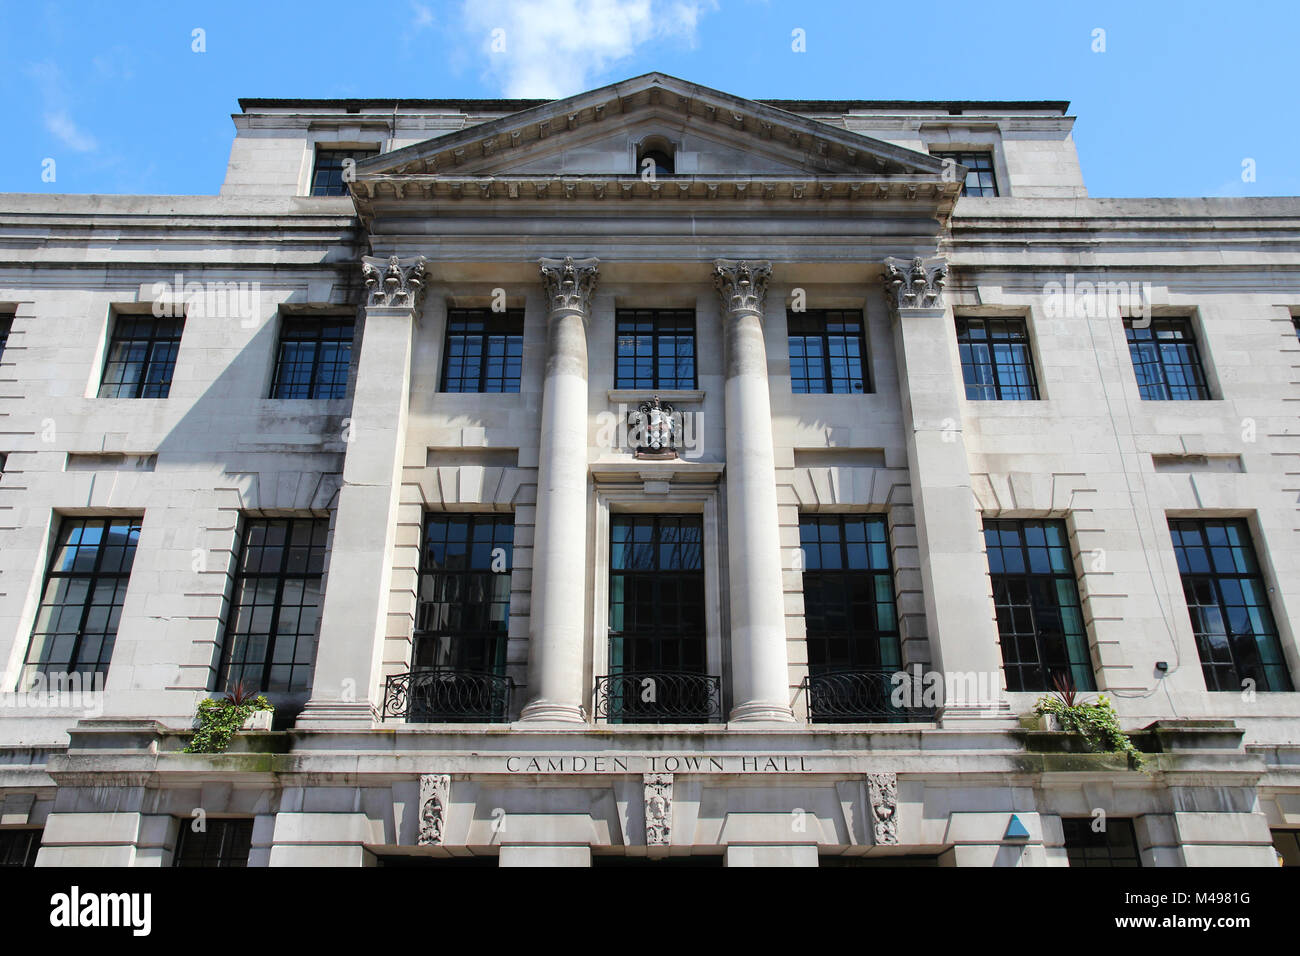 London, England - Camden Town hall, old British architecture Stock Photo